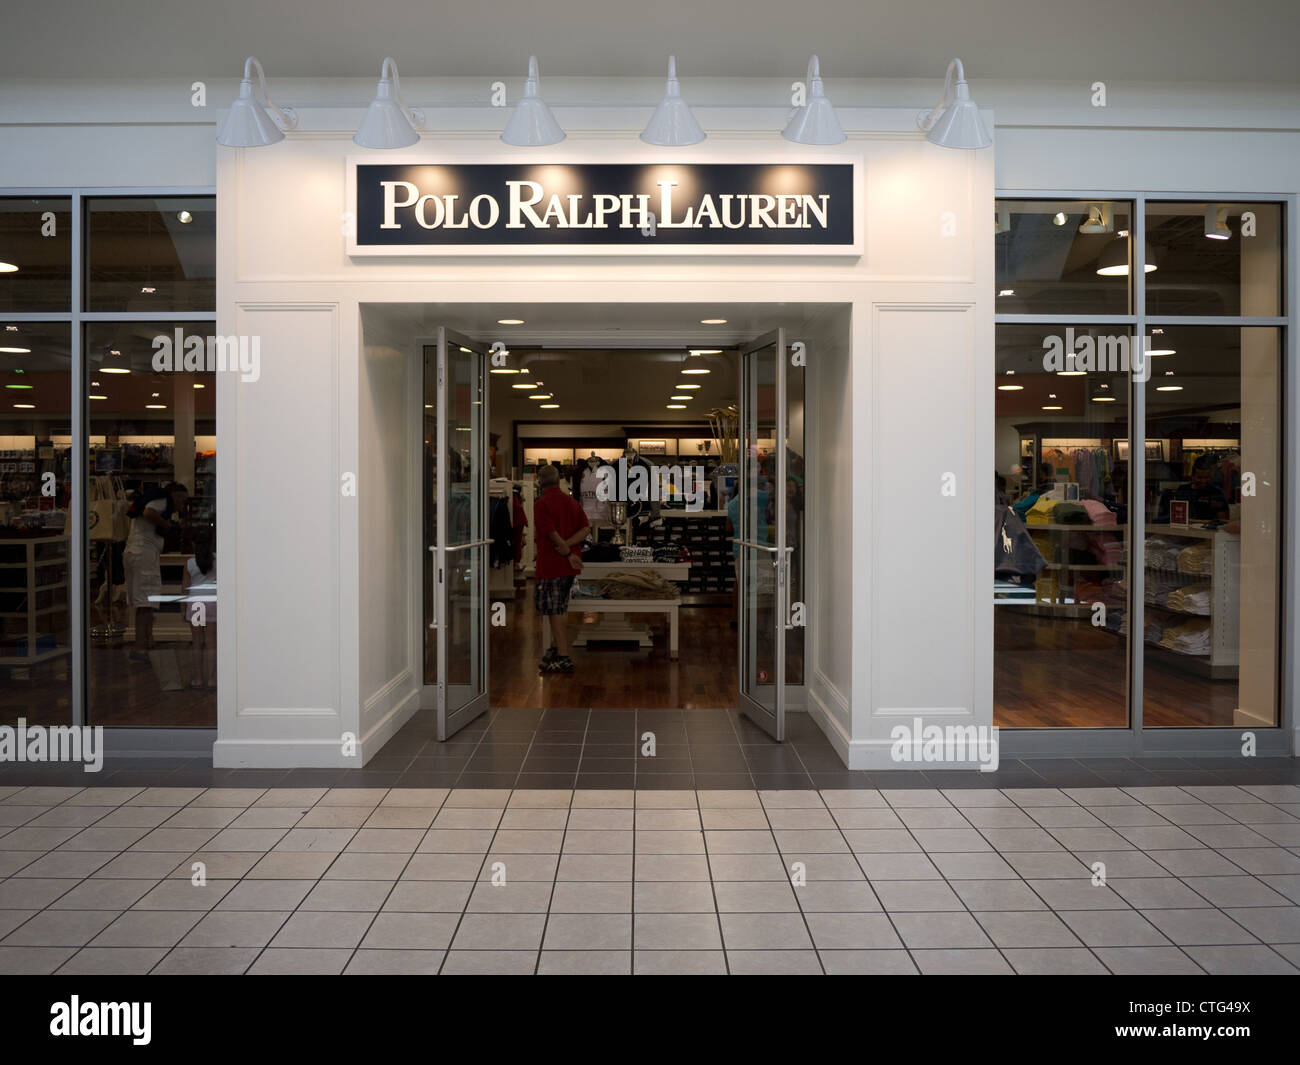 polo ralph lauren store entrance inside mall - Stock Image